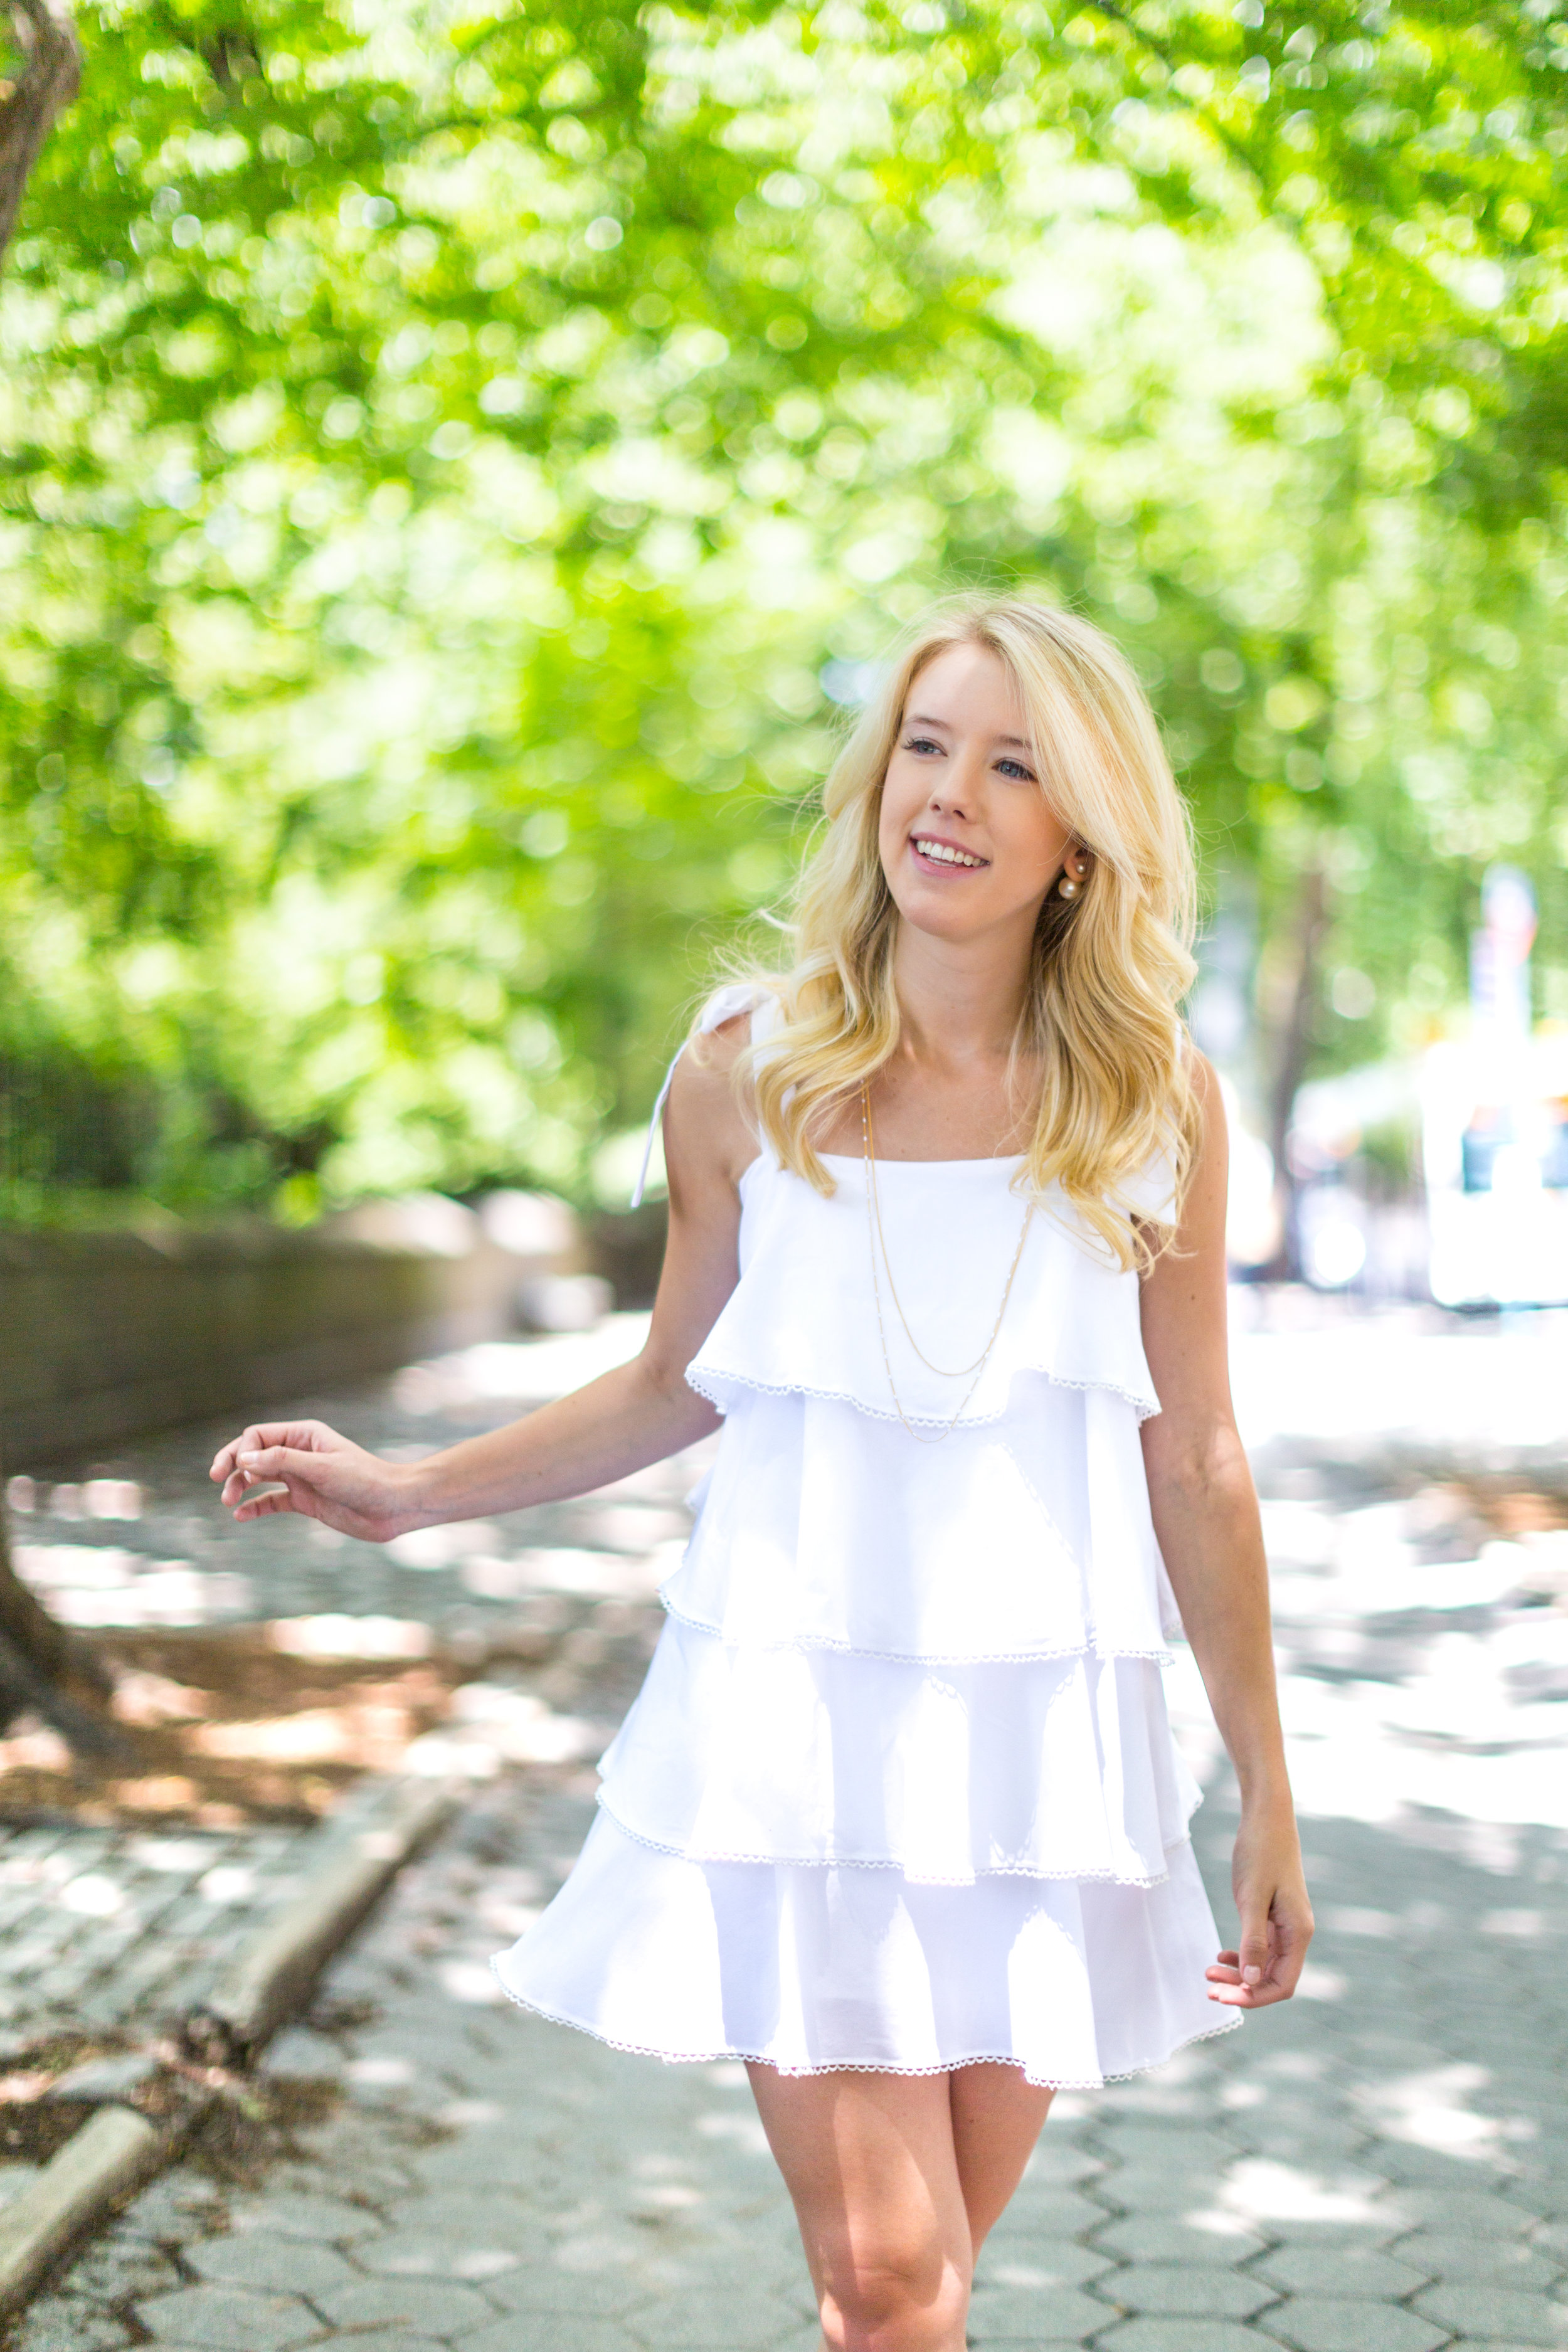 NYC Central Park Summer Fashion White Ruffled Dress-6.jpg